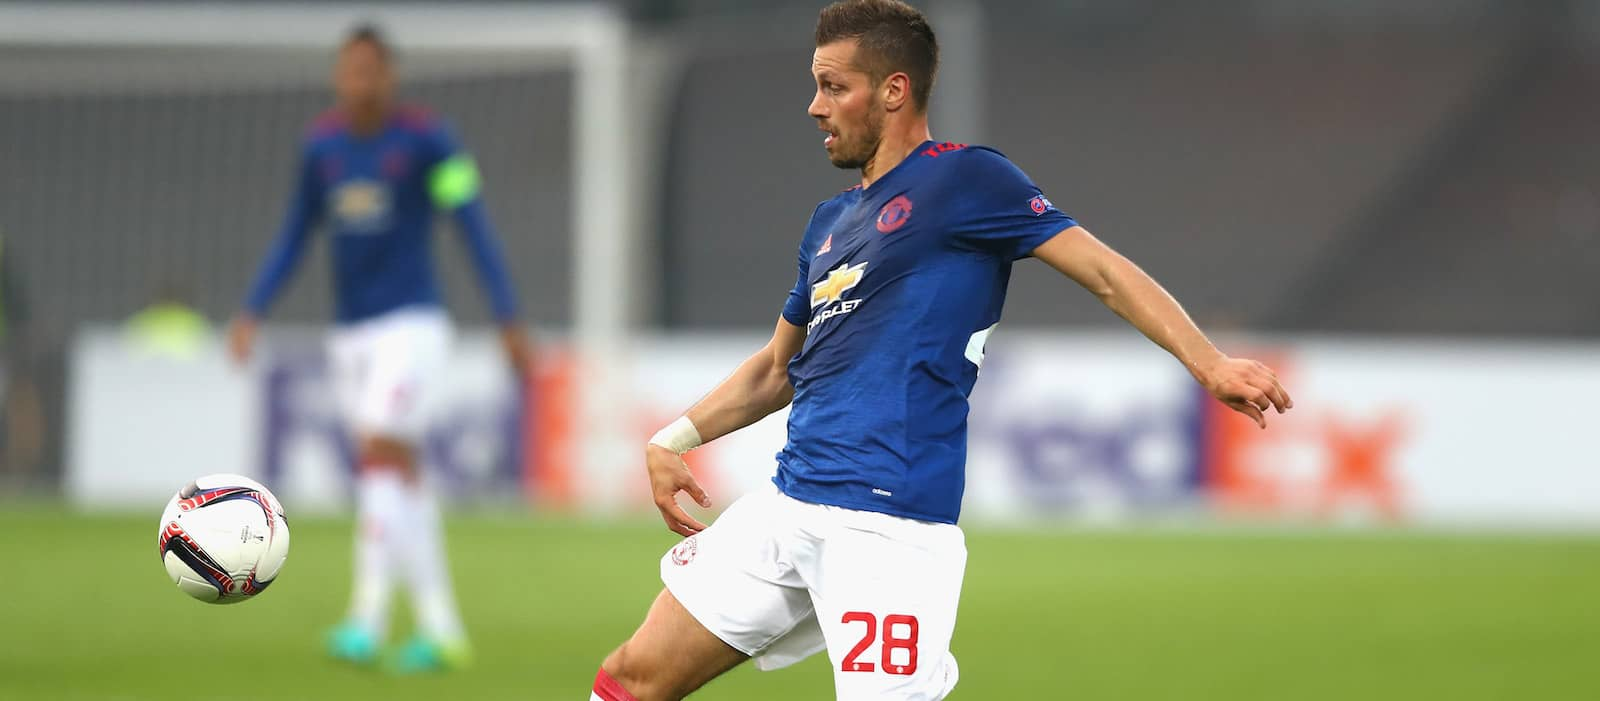 Manchester United midfielder Morgan Schneiderlin set to undergo medical at Everton